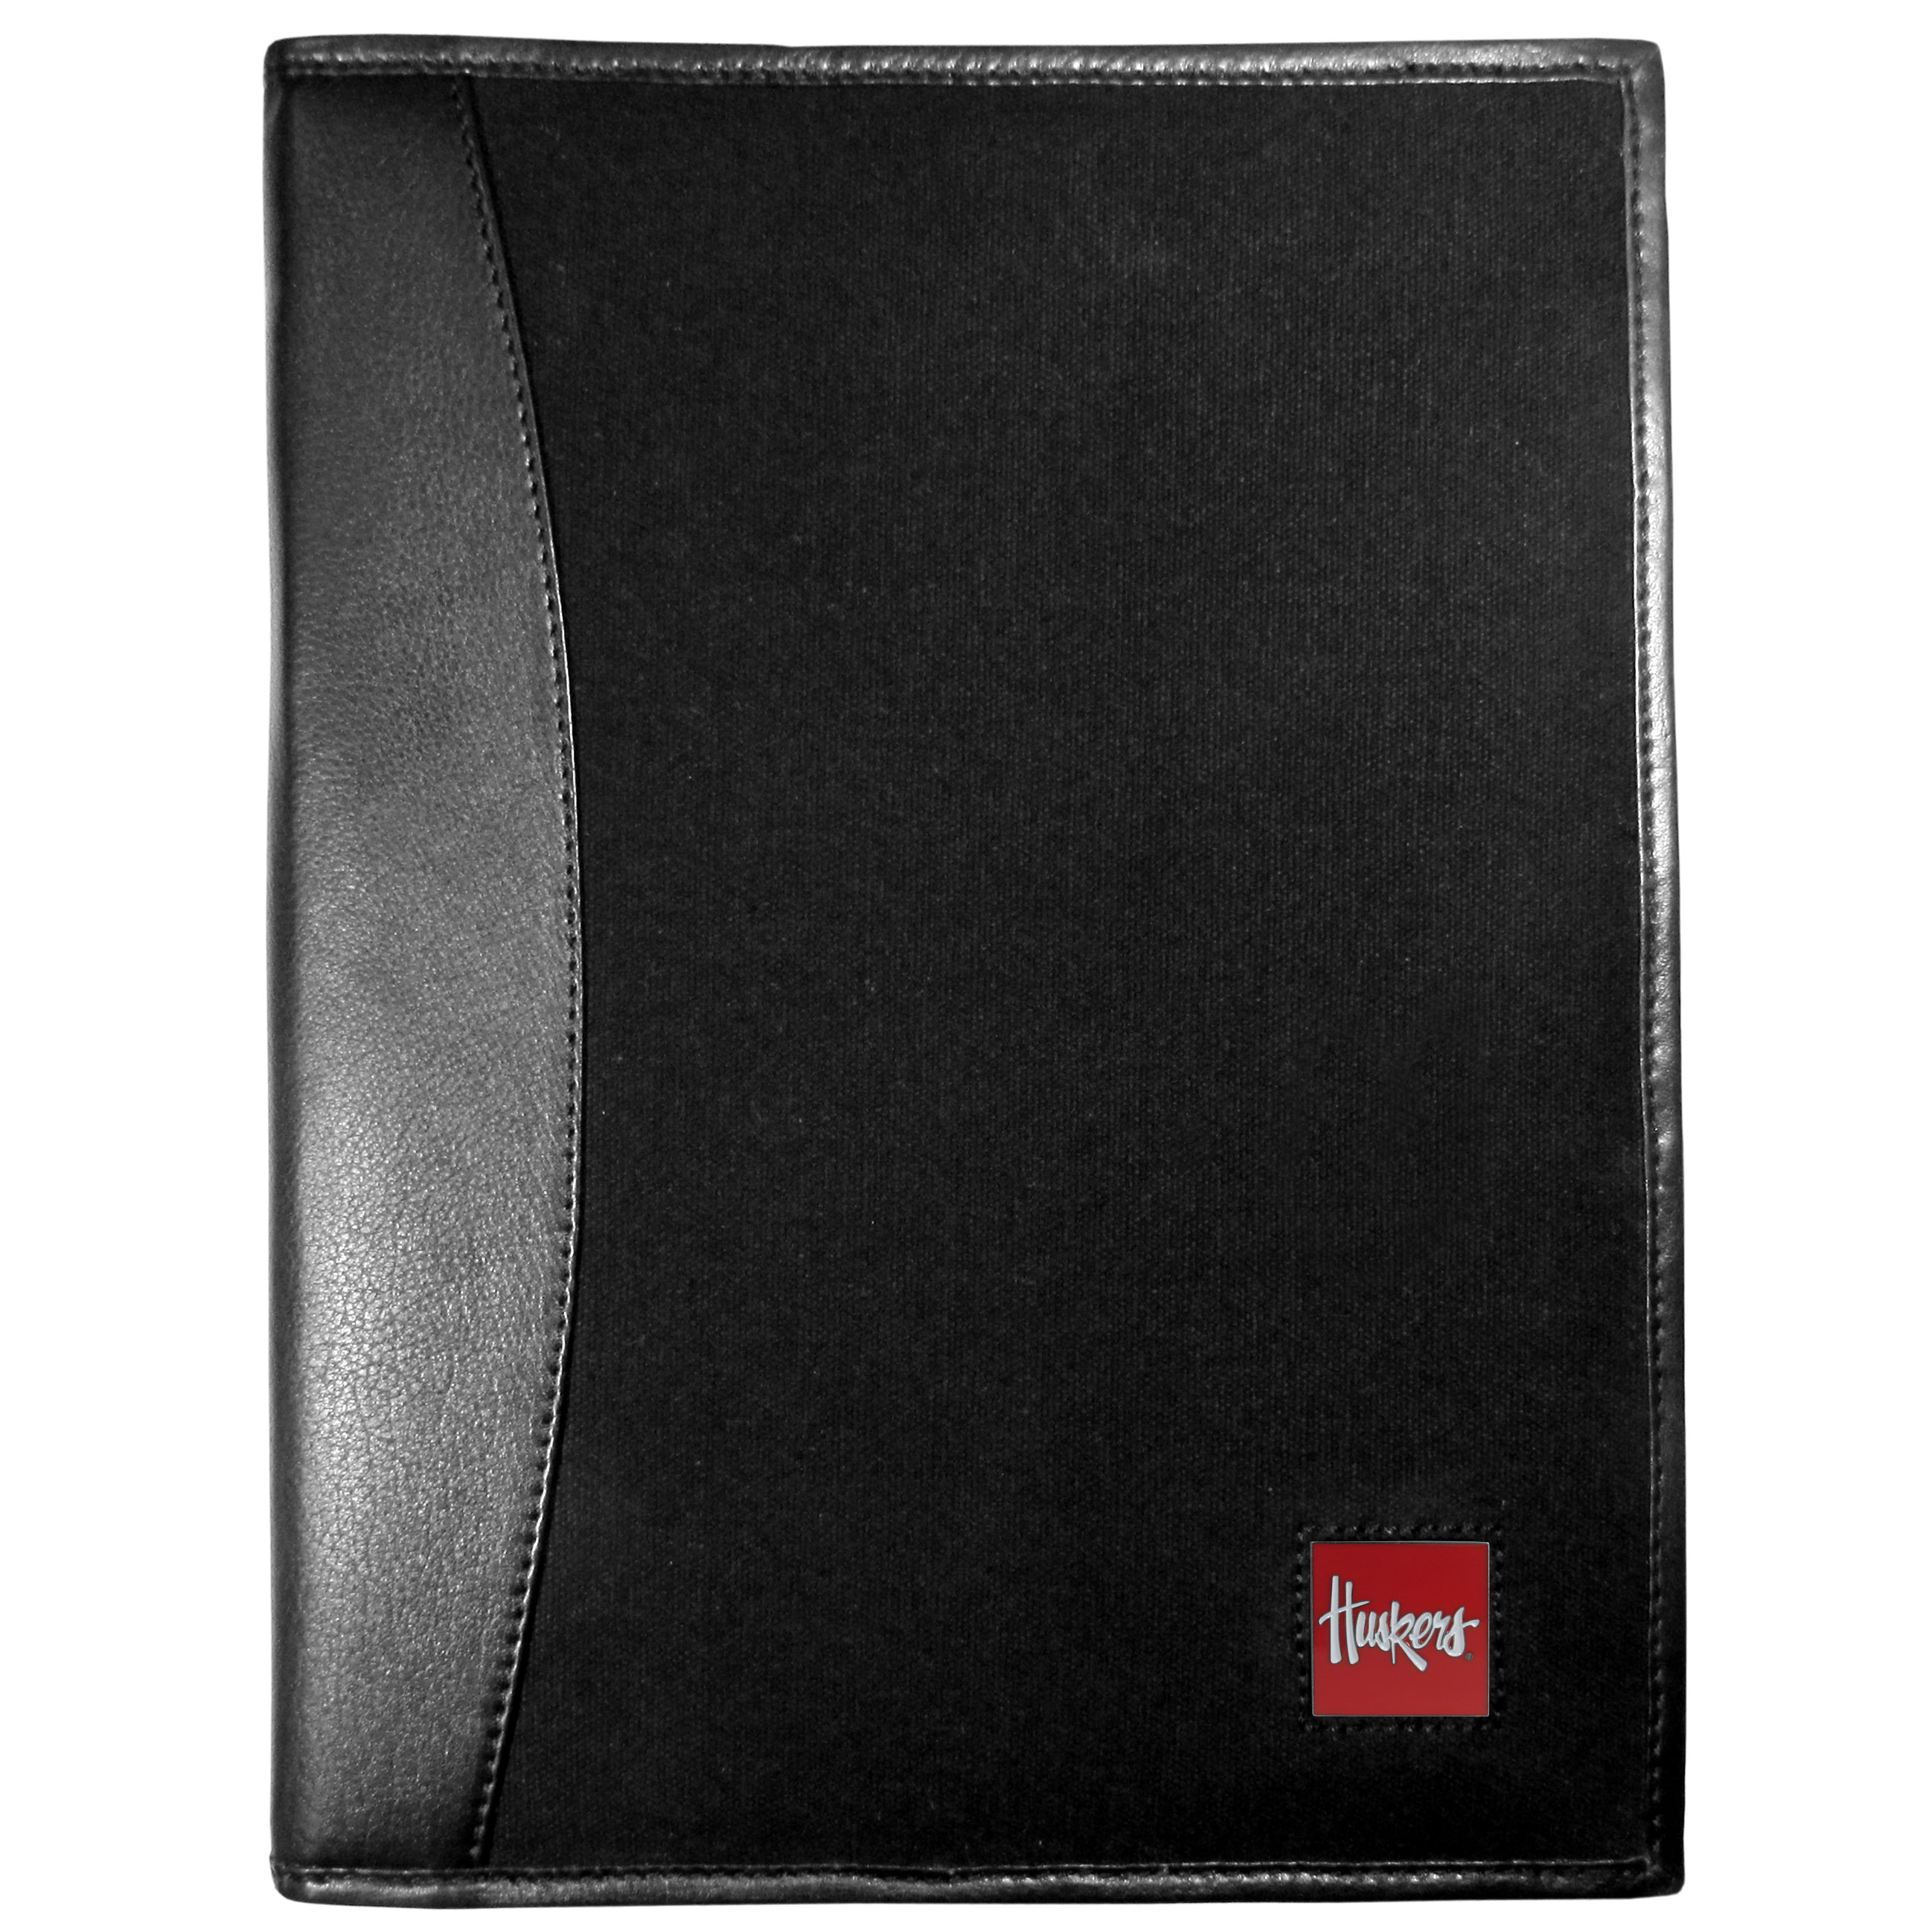 Nebraska Cornhuskers Leather and Canvas Padfolio - Our leather and canvas padfolio perfectly blends form and function. The attractive portfolio is bound in fine grain leather with an attractive canvas finish and the interior is a soft nylon. This high quality business accessory also features a fully cast metal Nebraska Cornhuskers emblem that is subtly set in the corner of the organizer. It is packed with features like 6 card slots for badges, business cards, hotel keys or credit cards and ID with a large pocket for loose papers and a writing tablet slot making it a must-have for the professional on the go.